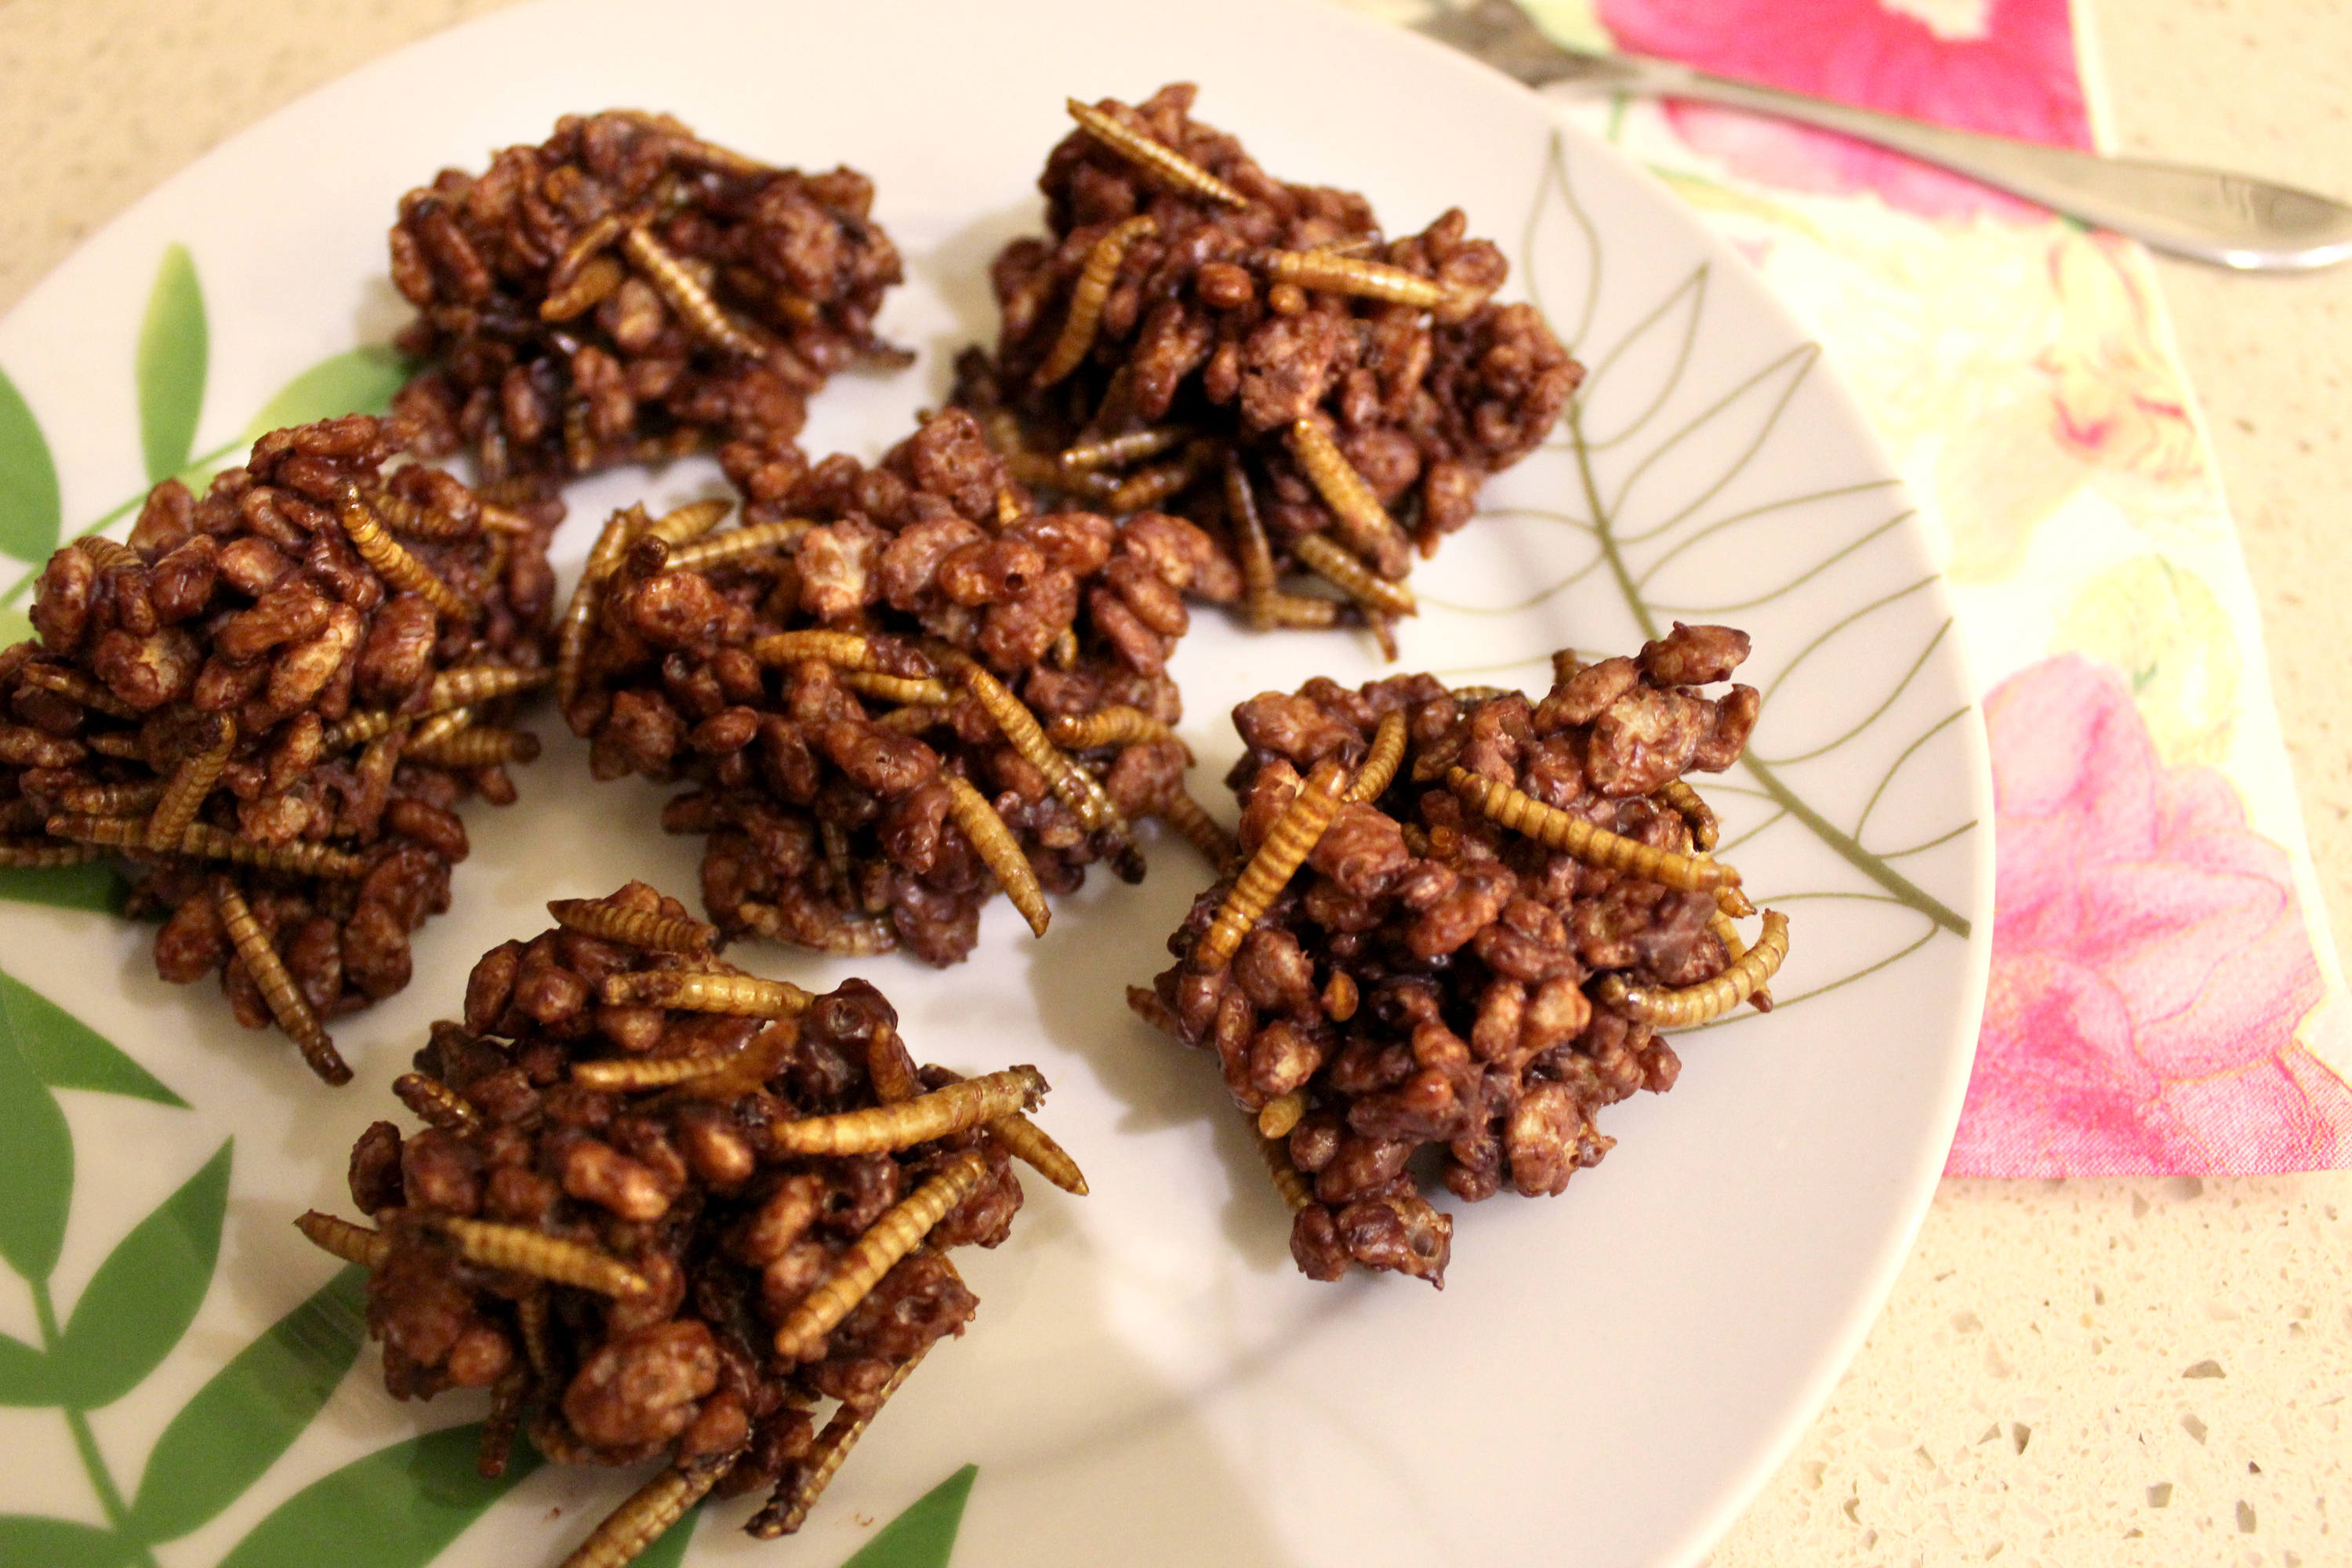 Time Out Tries: Edible Insect Farm Tour